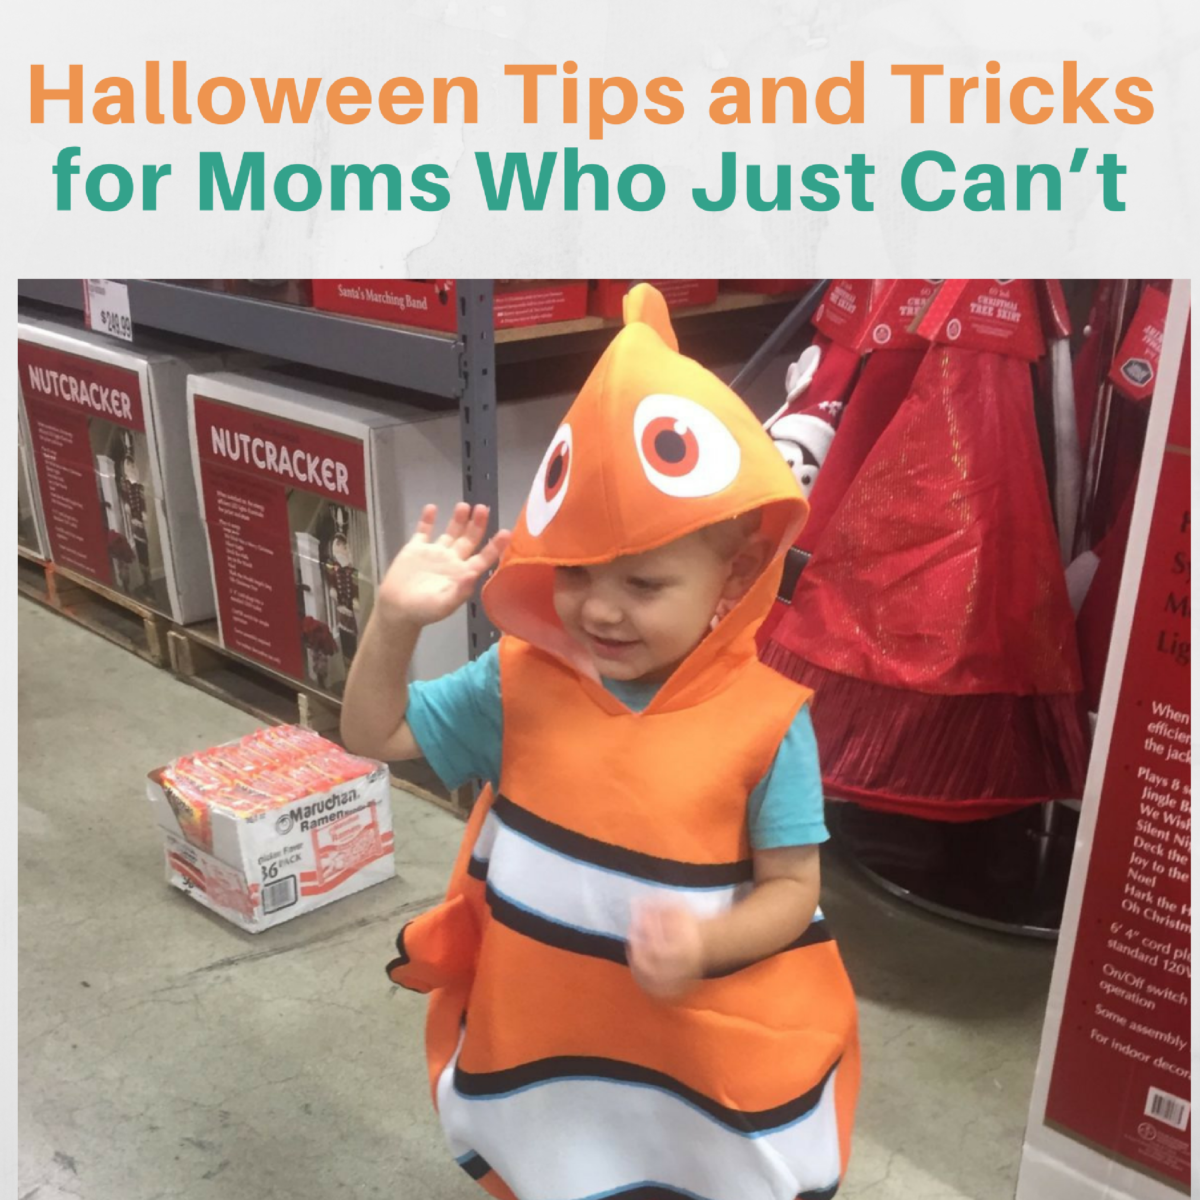 Halloween Tips and Tricks for Moms Who Just Can't